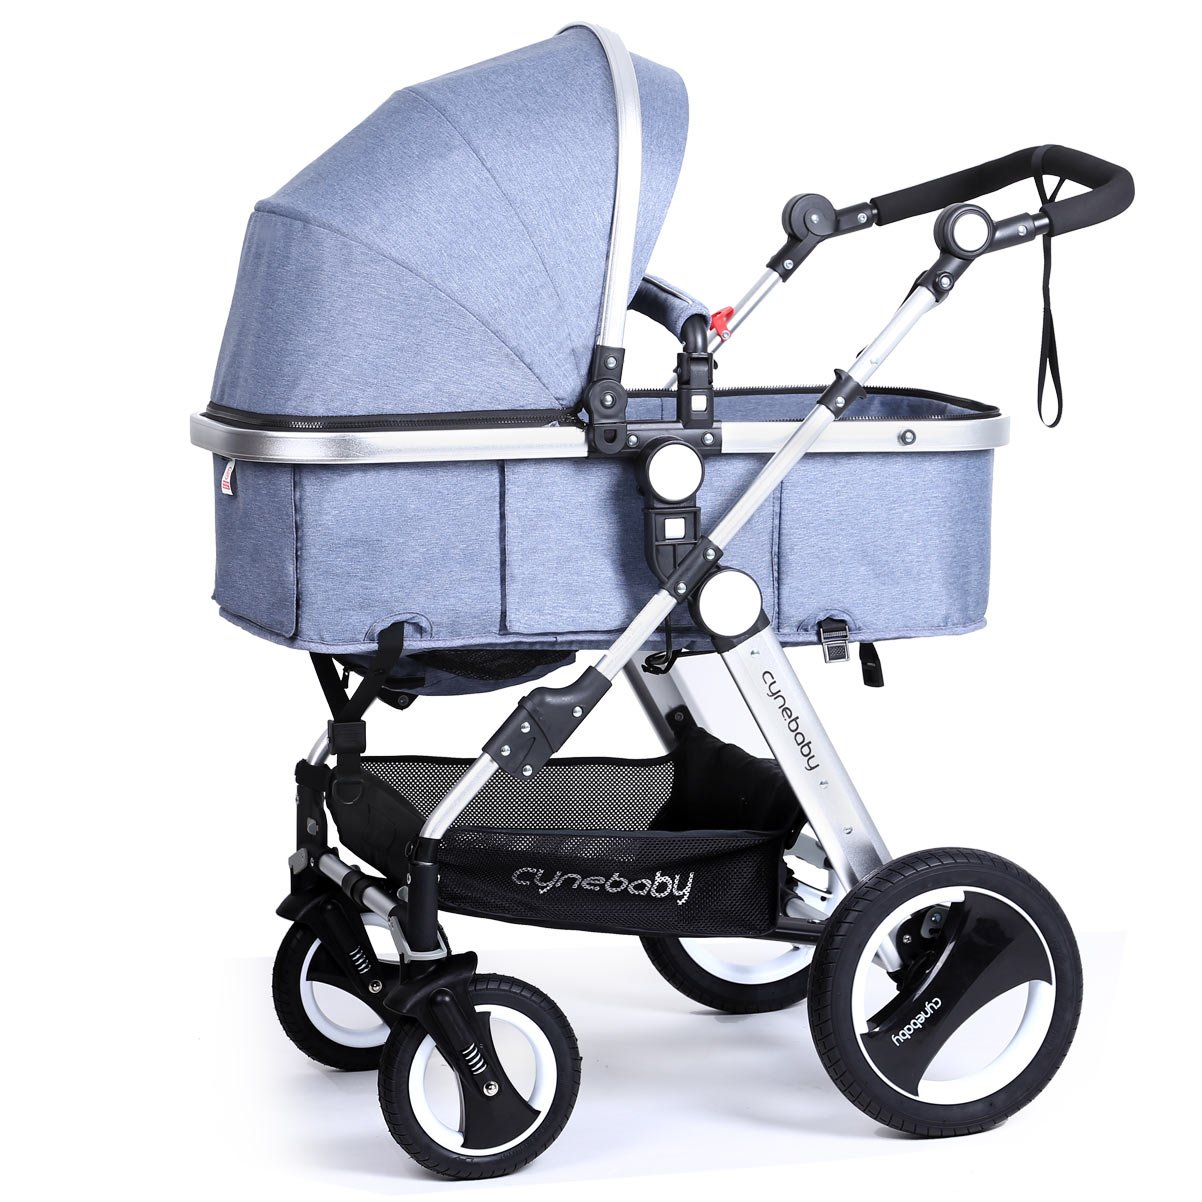 Infant Baby Stroller Toddler Carriage - Cynebaby Folding Pram Bassinet Strollers with Cup Holder (blue) by cynebaby (Image #1)